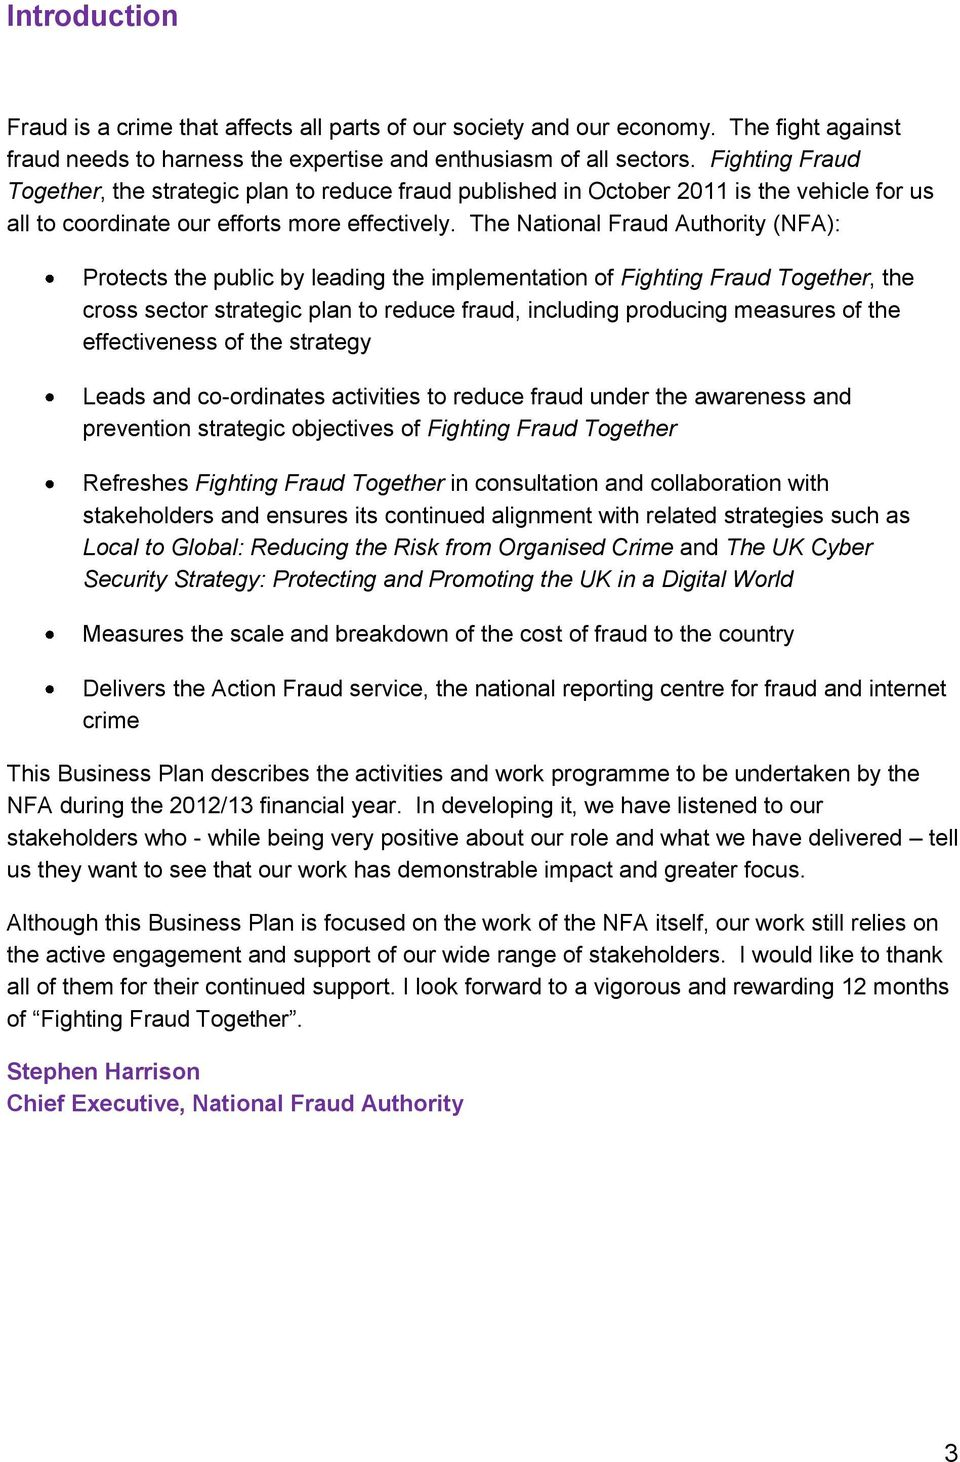 The National Fraud Authority (NFA): Protects the public by leading the implementation of Fighting Fraud Together, the cross sector strategic plan to reduce fraud, including producing measures of the